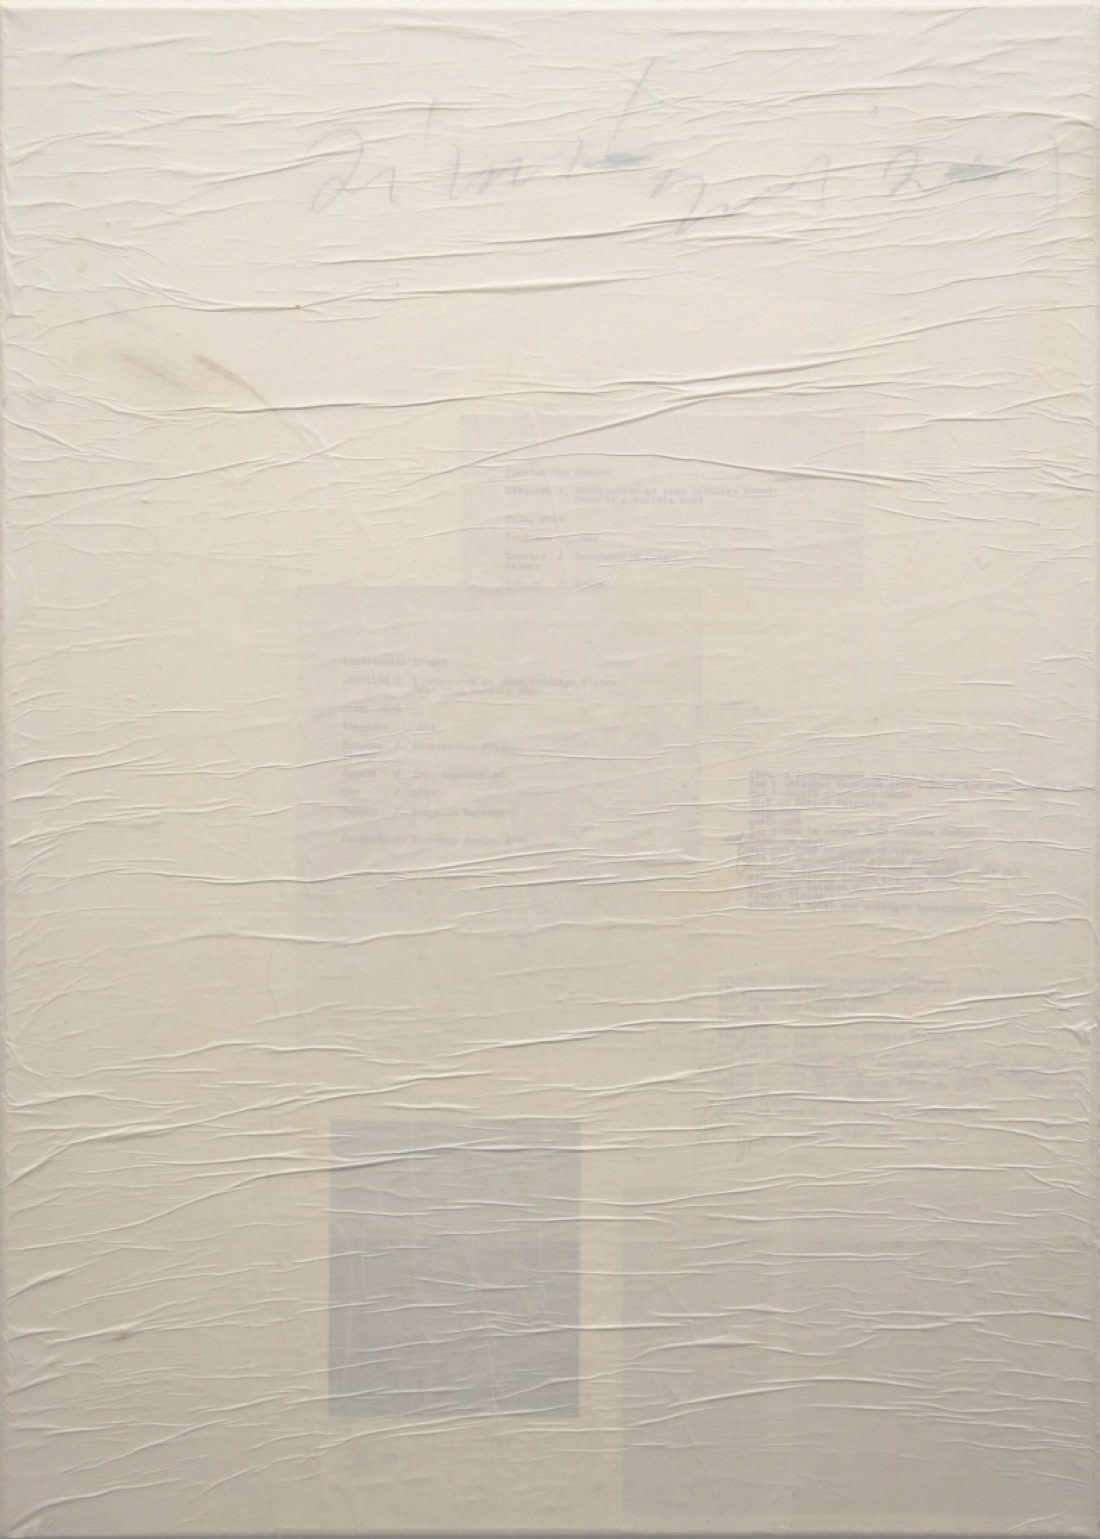 Untitled (10) from the Ghost Notes Series 2018, mixed media on  Canvas, 70x50 cm